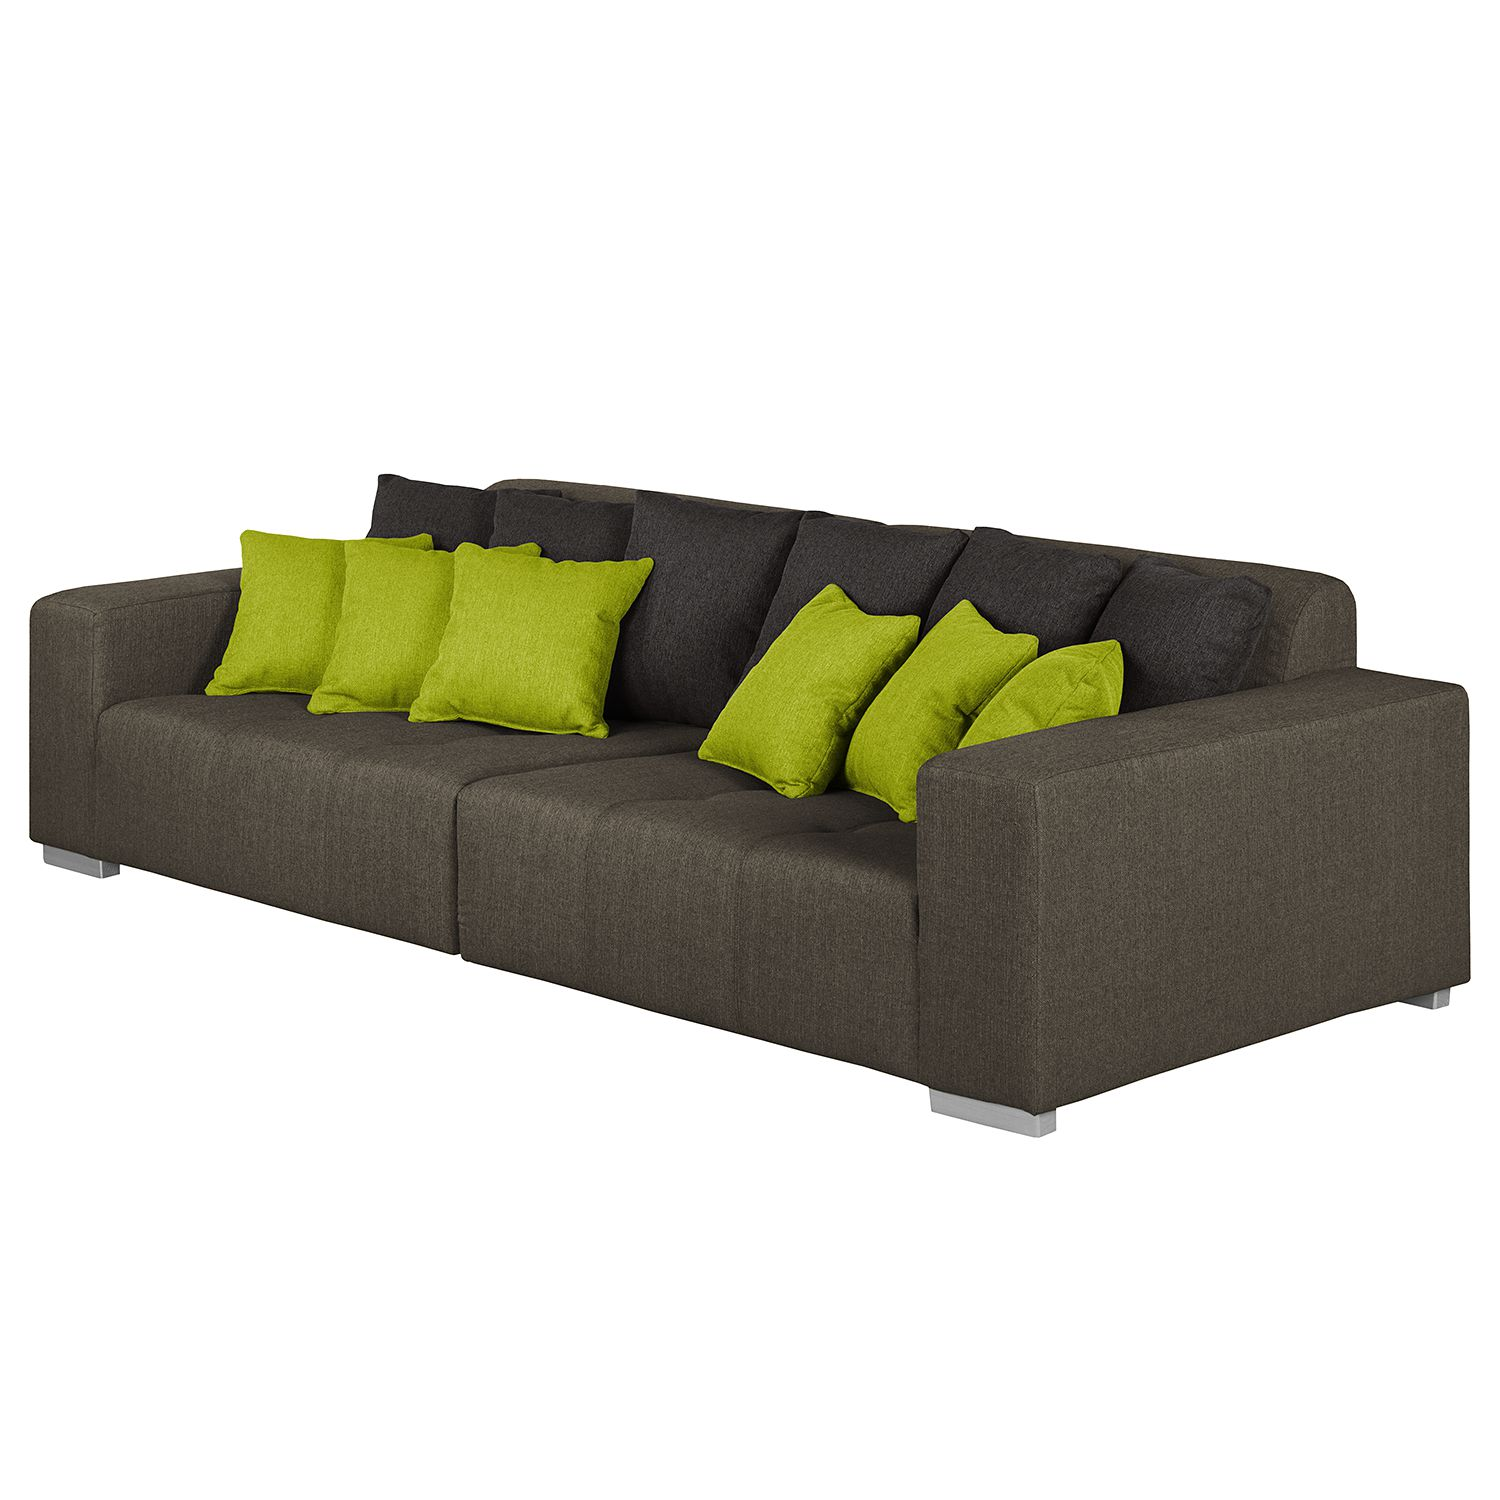 marque anonyme canape assise xxl microfibre comparer les prix et promo. Black Bedroom Furniture Sets. Home Design Ideas